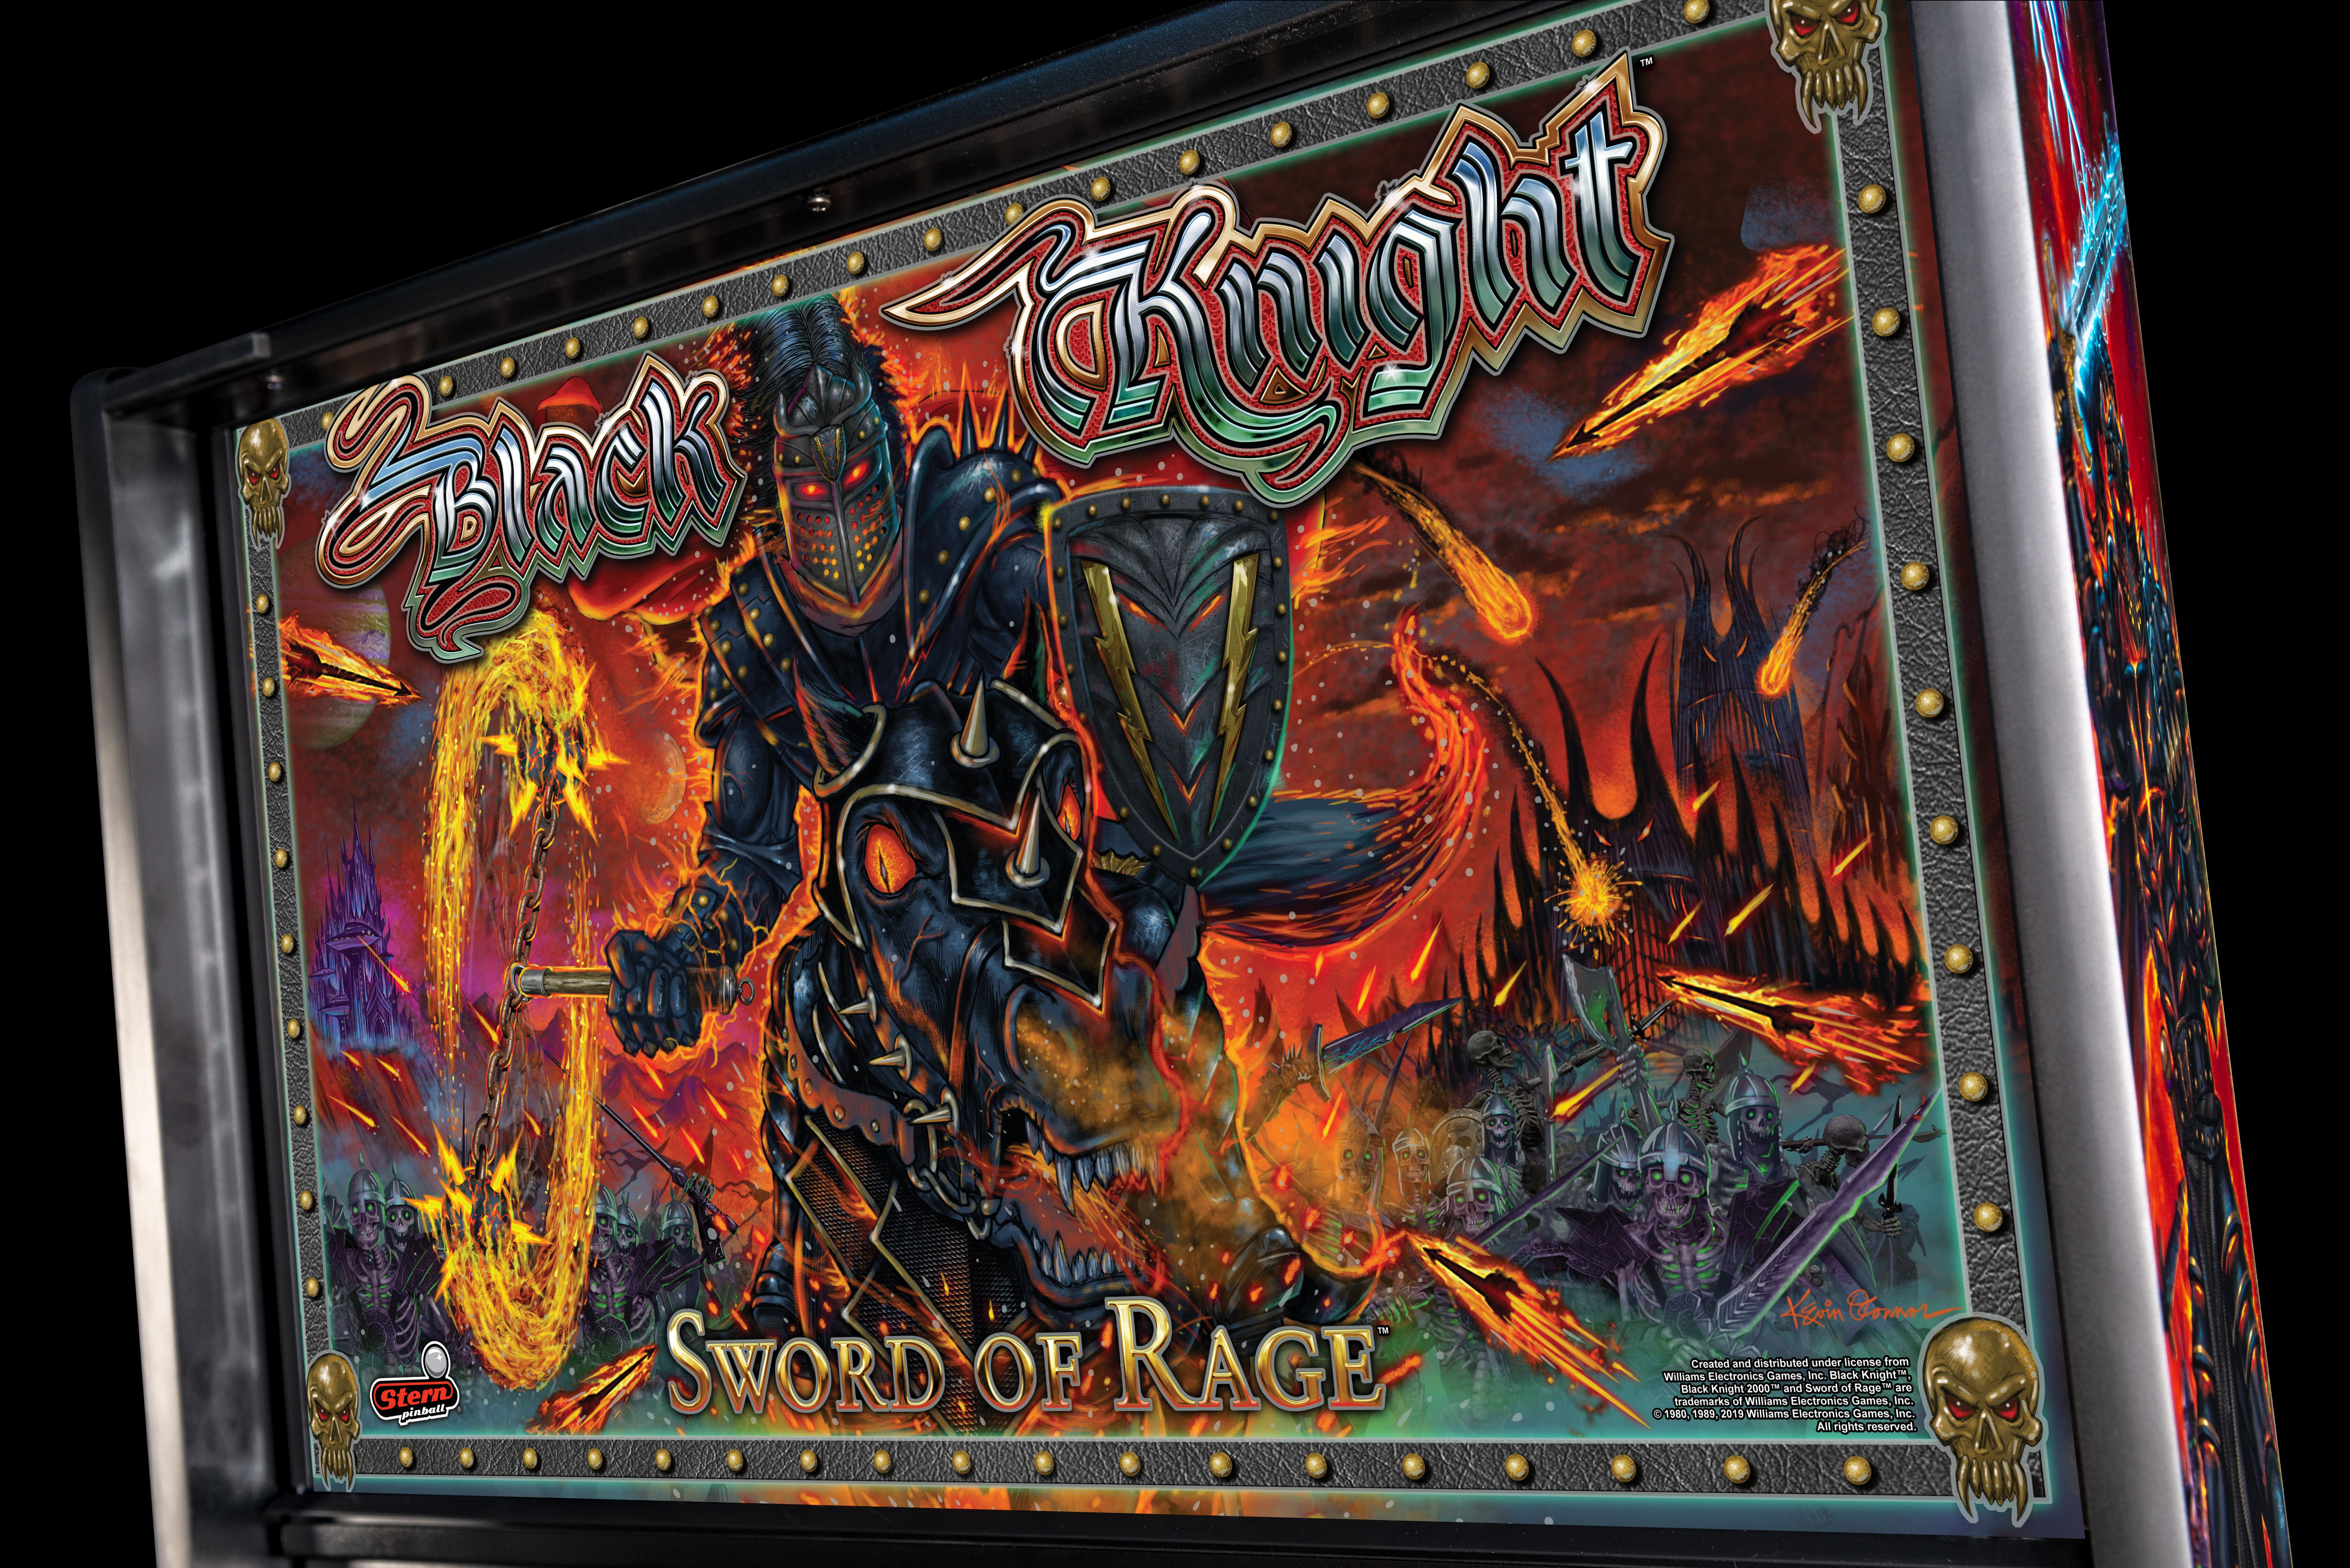 Black Knight: Sword of Rage Deep Dive! In Depth Overview of